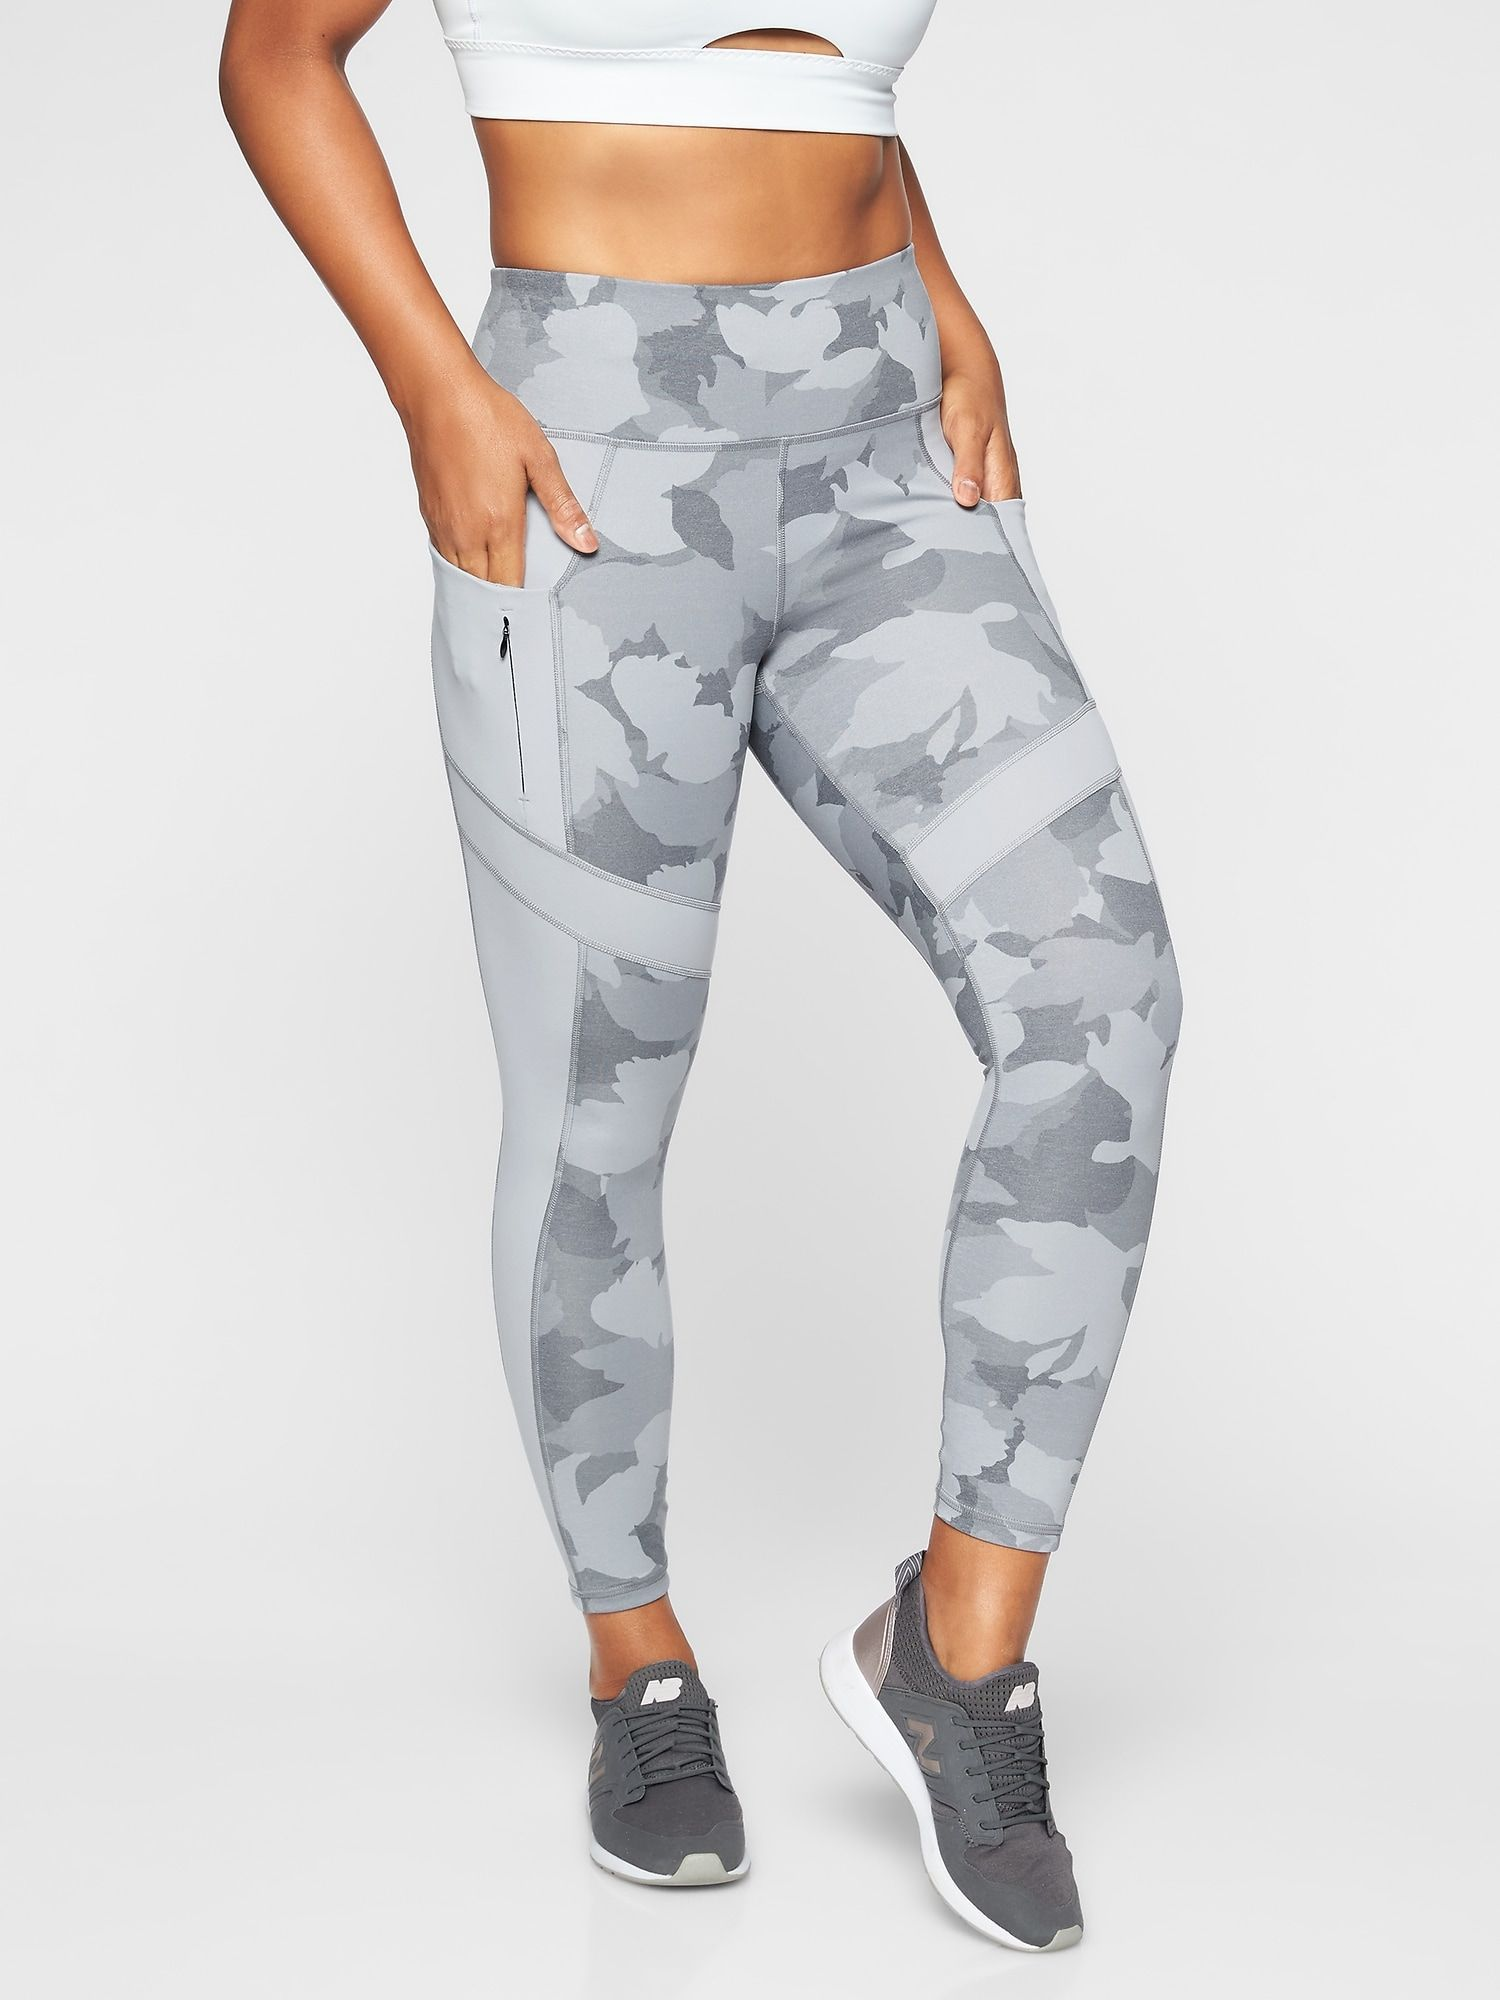 13140a2b28 Leggings - size large Athletic Outfits, Go Shopping, What To Wear,  Sweatpants,